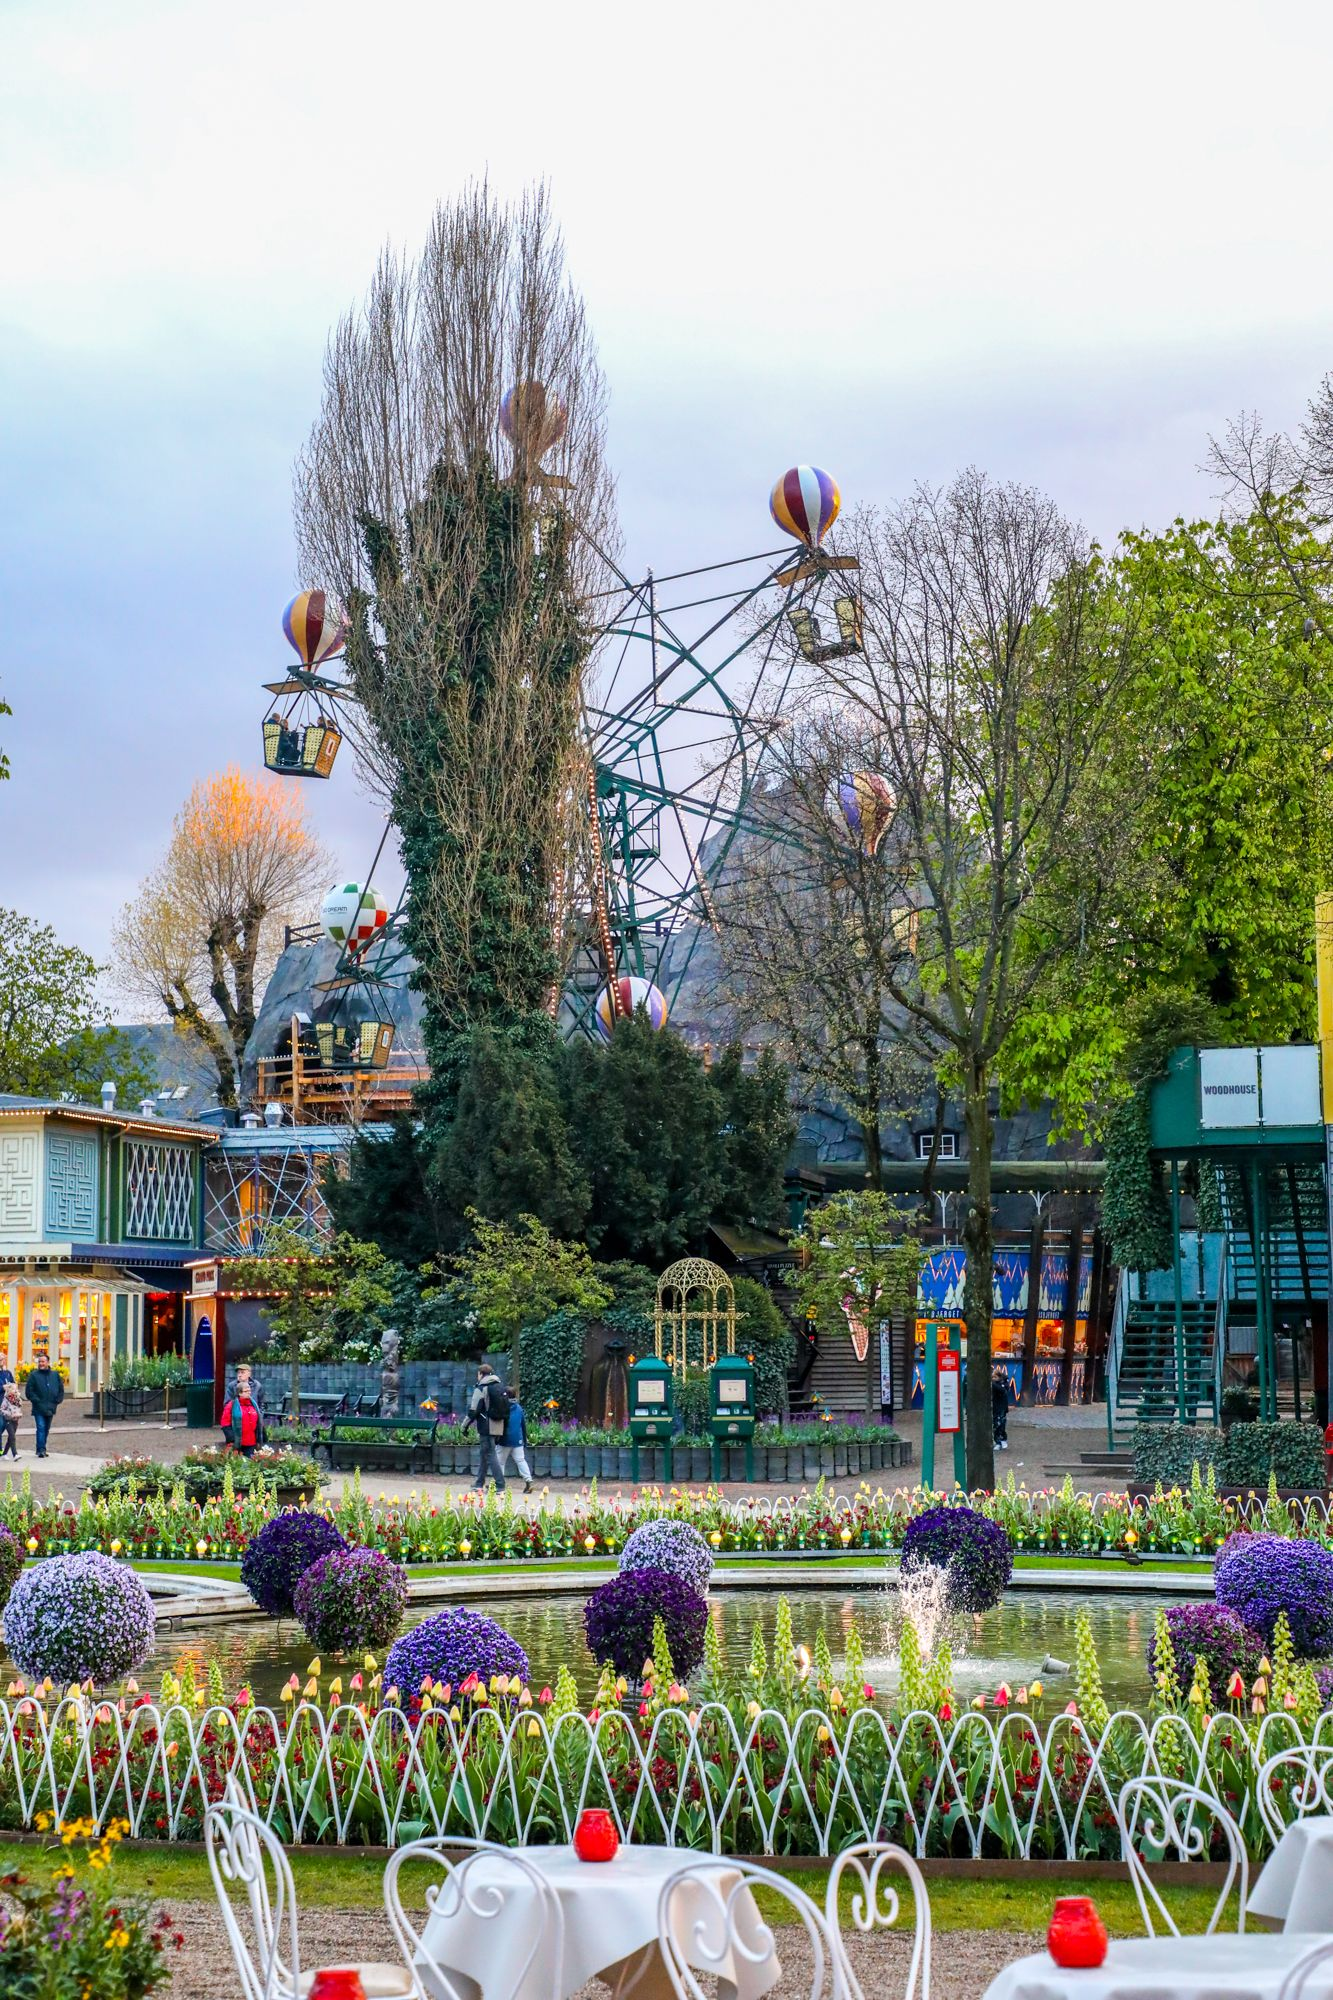 a7d3414ebb280827176dcbff58f90971 - What Is Tivoli Gardens Like Today